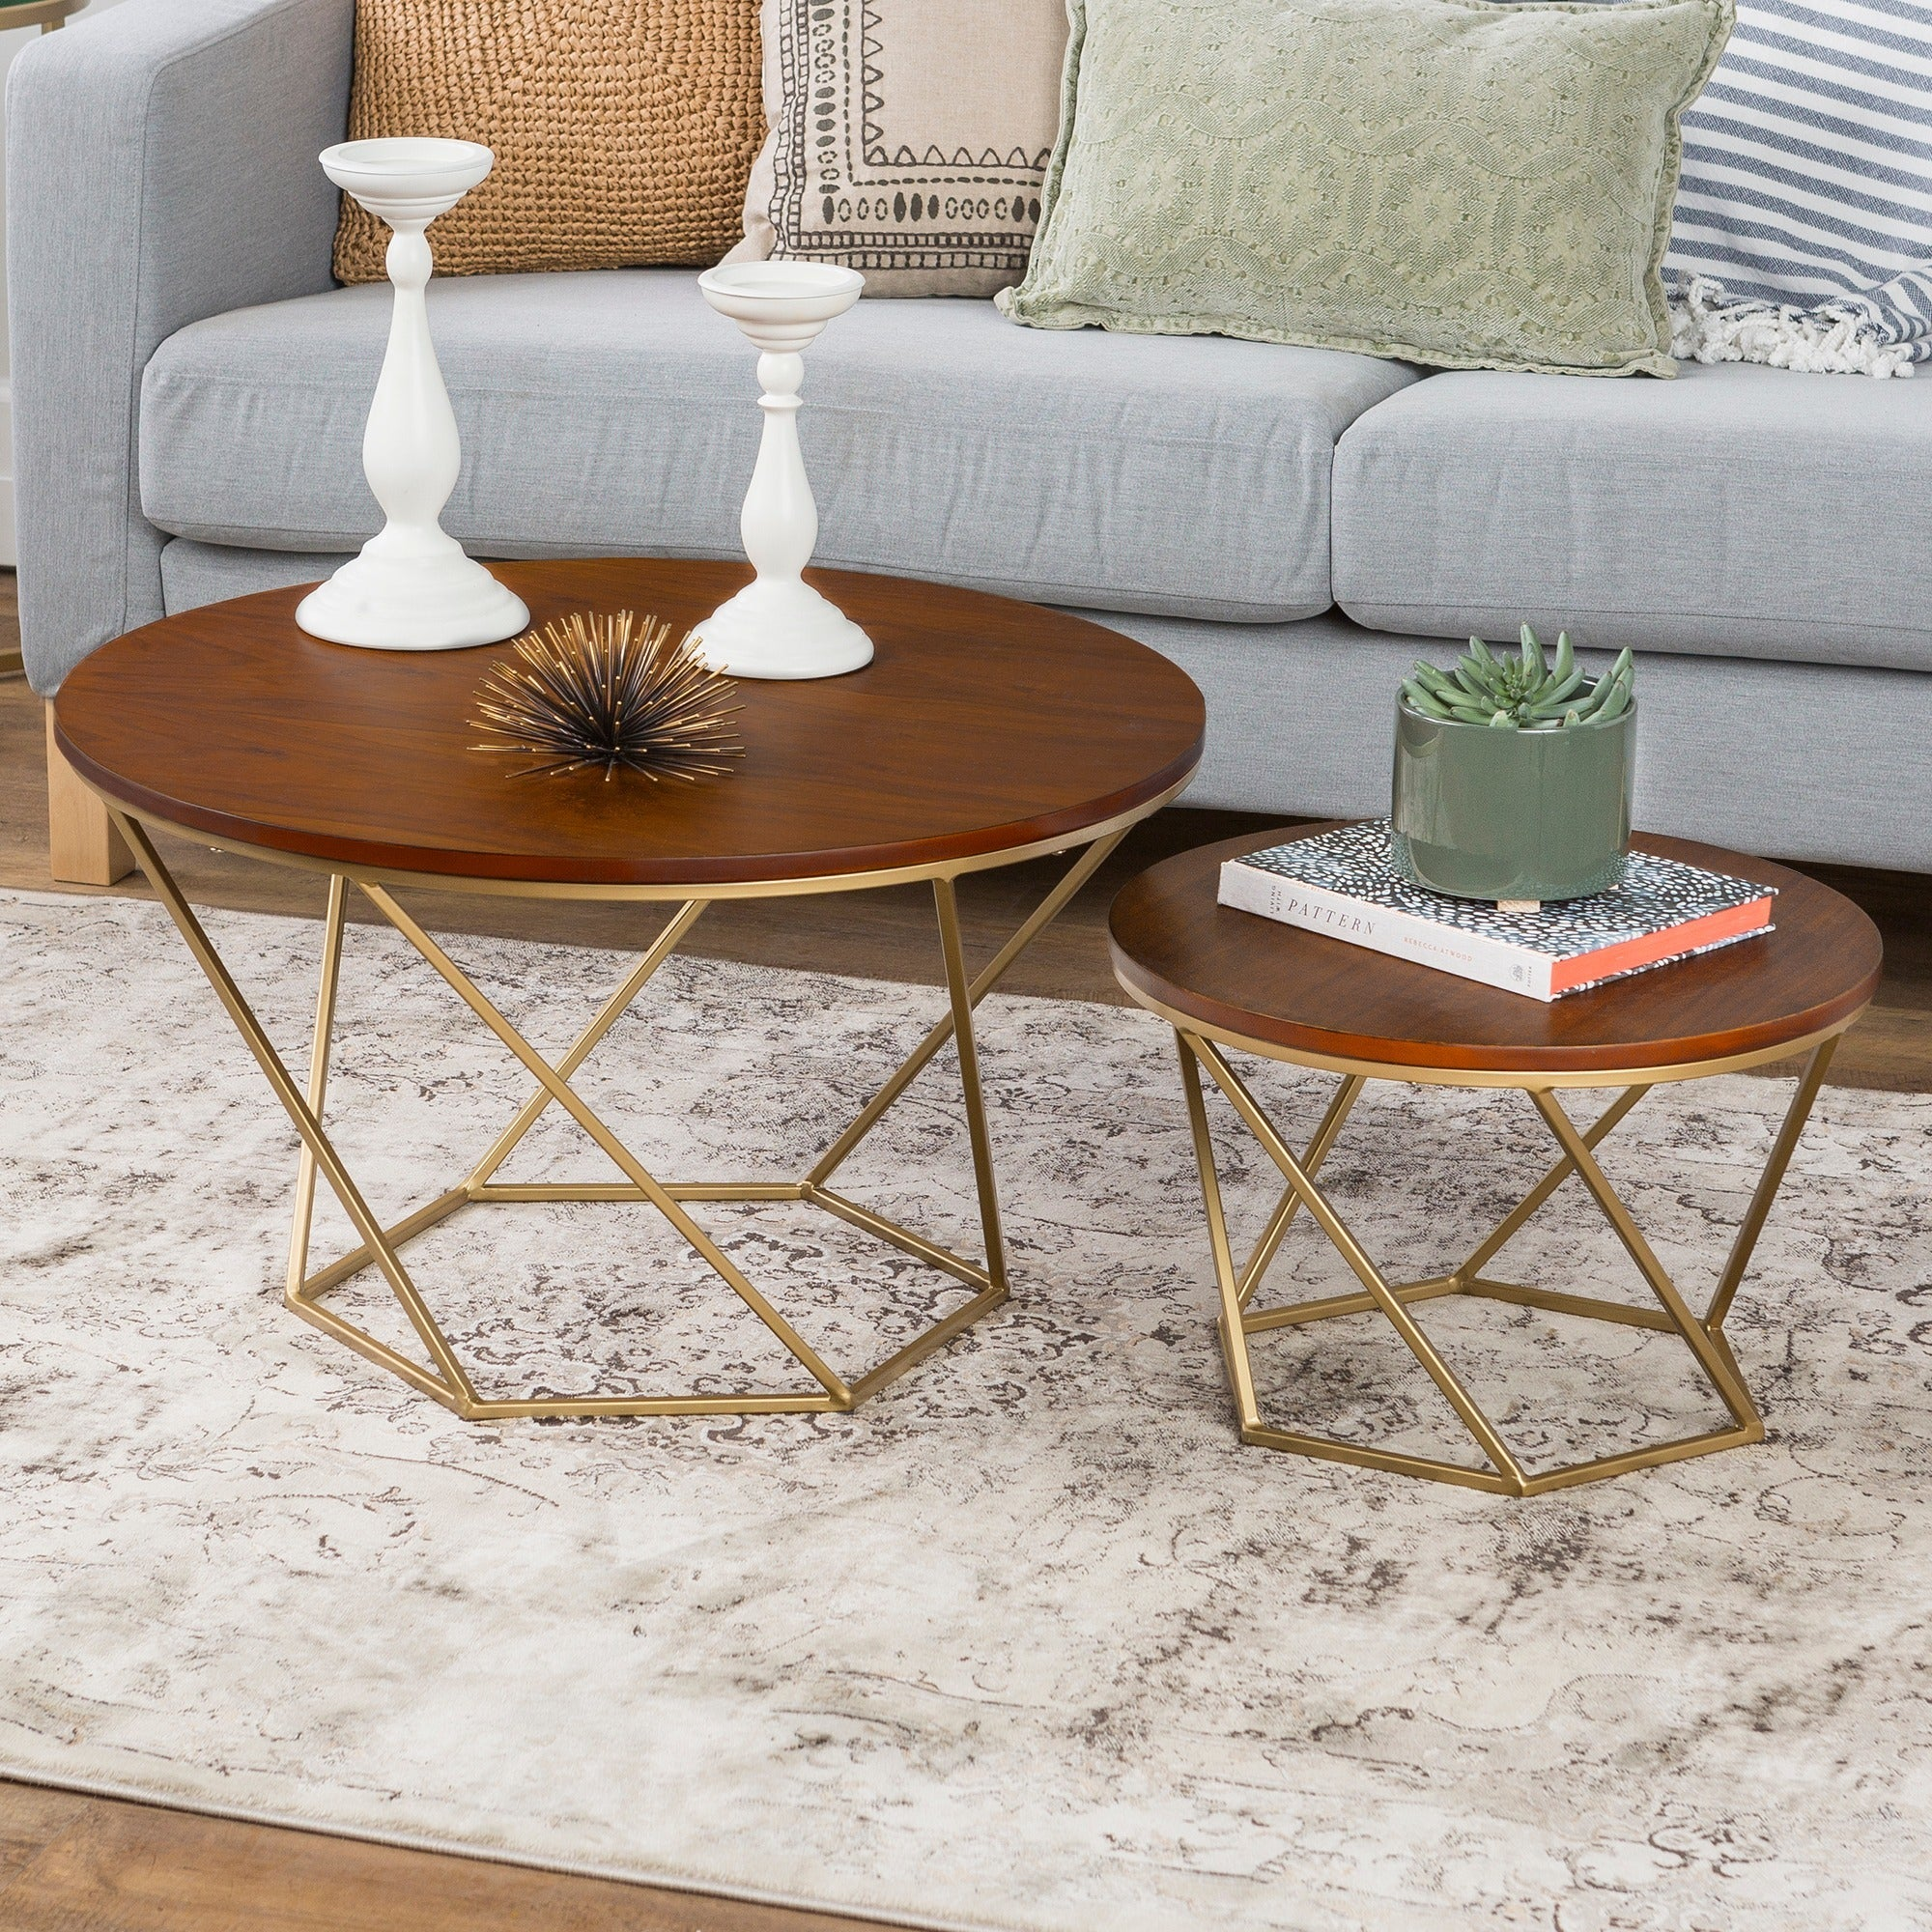 Geometric Wood Nesting Coffee Tables Walnut 63d531ad 3676 4c3f 8f96 f78eafc8534b Top Result 50 Best Of Gold and Glass Coffee Table Image 2017 Ksh4